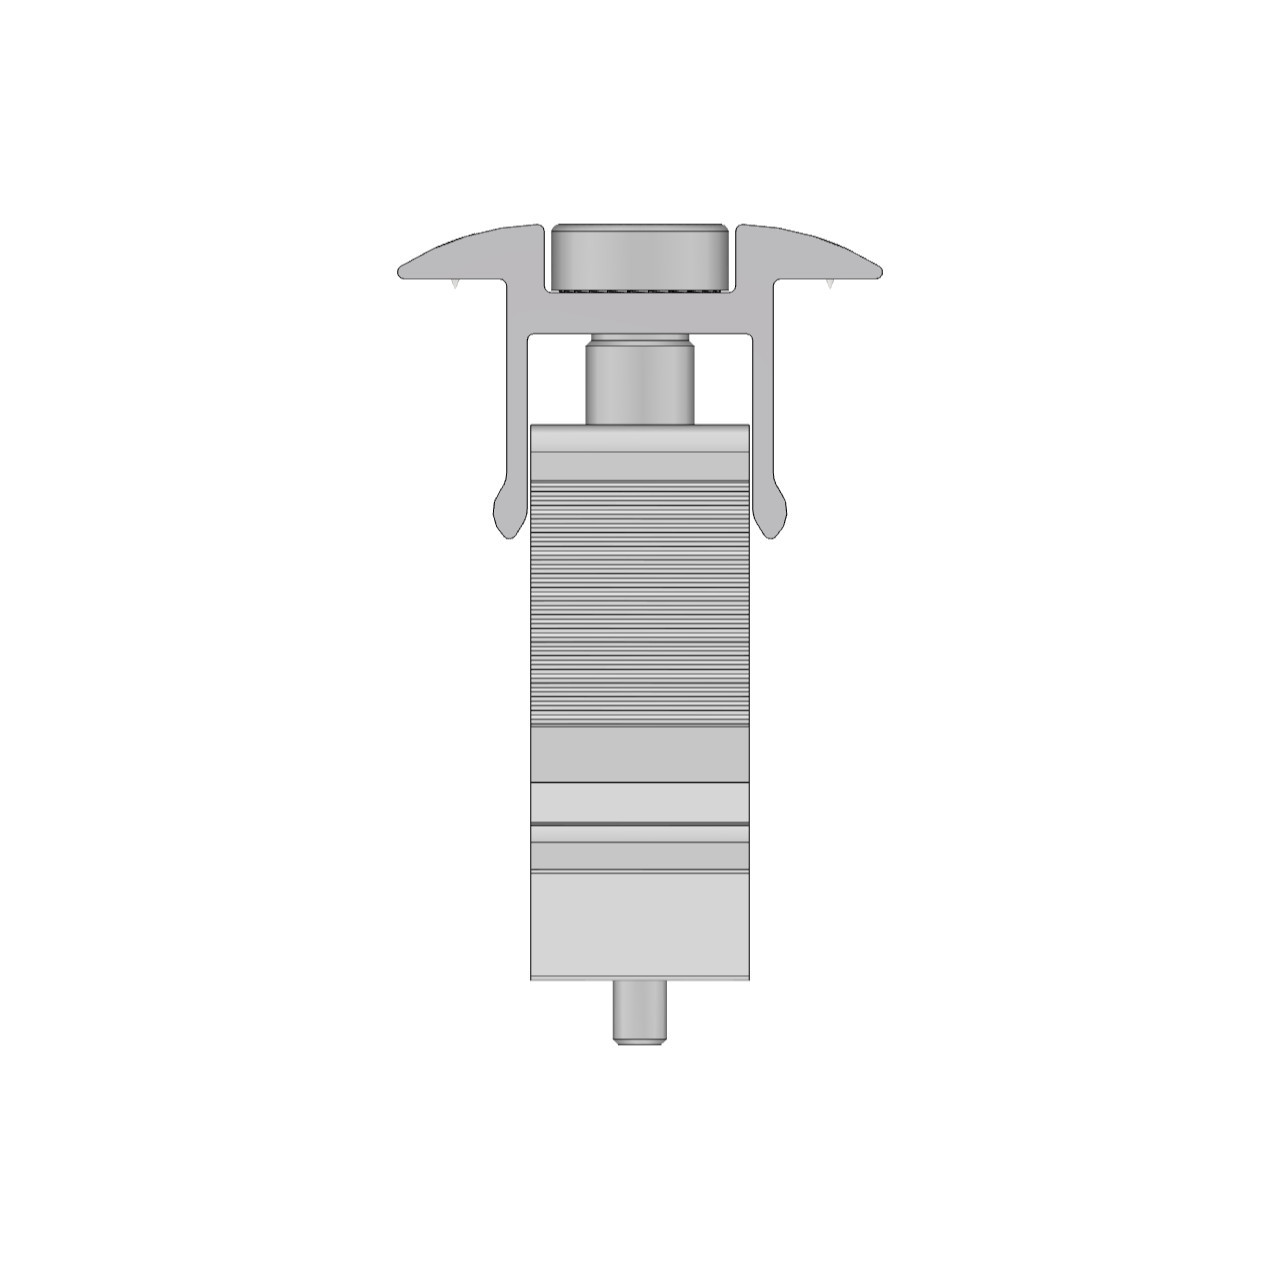 Schletter - Rapid16 Middle Clamp - Profile